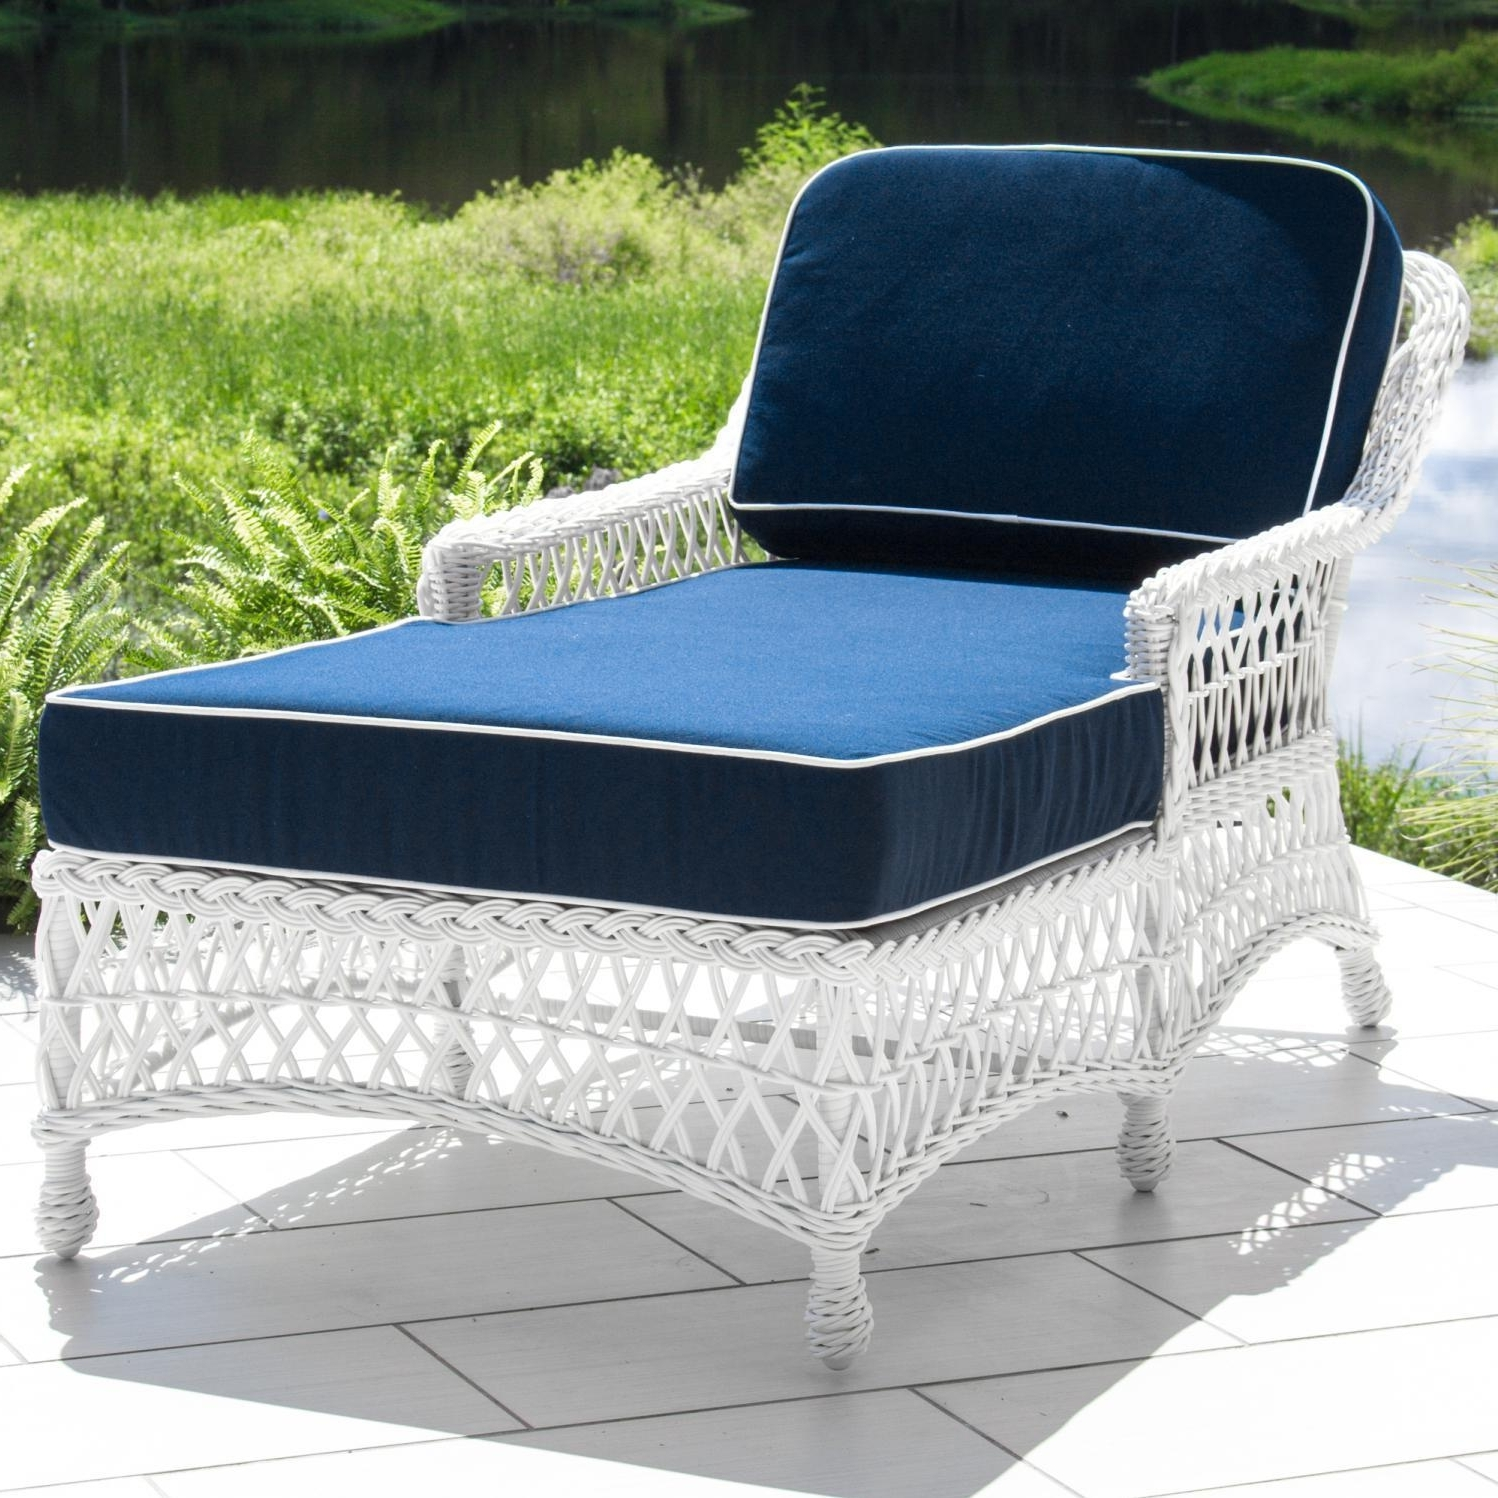 Newest Outdoor Wicker Chaise Lounges Pertaining To Outdoor : Affordable Chaise Lounges Chaise Lounge Patio Furniture (View 15 of 15)